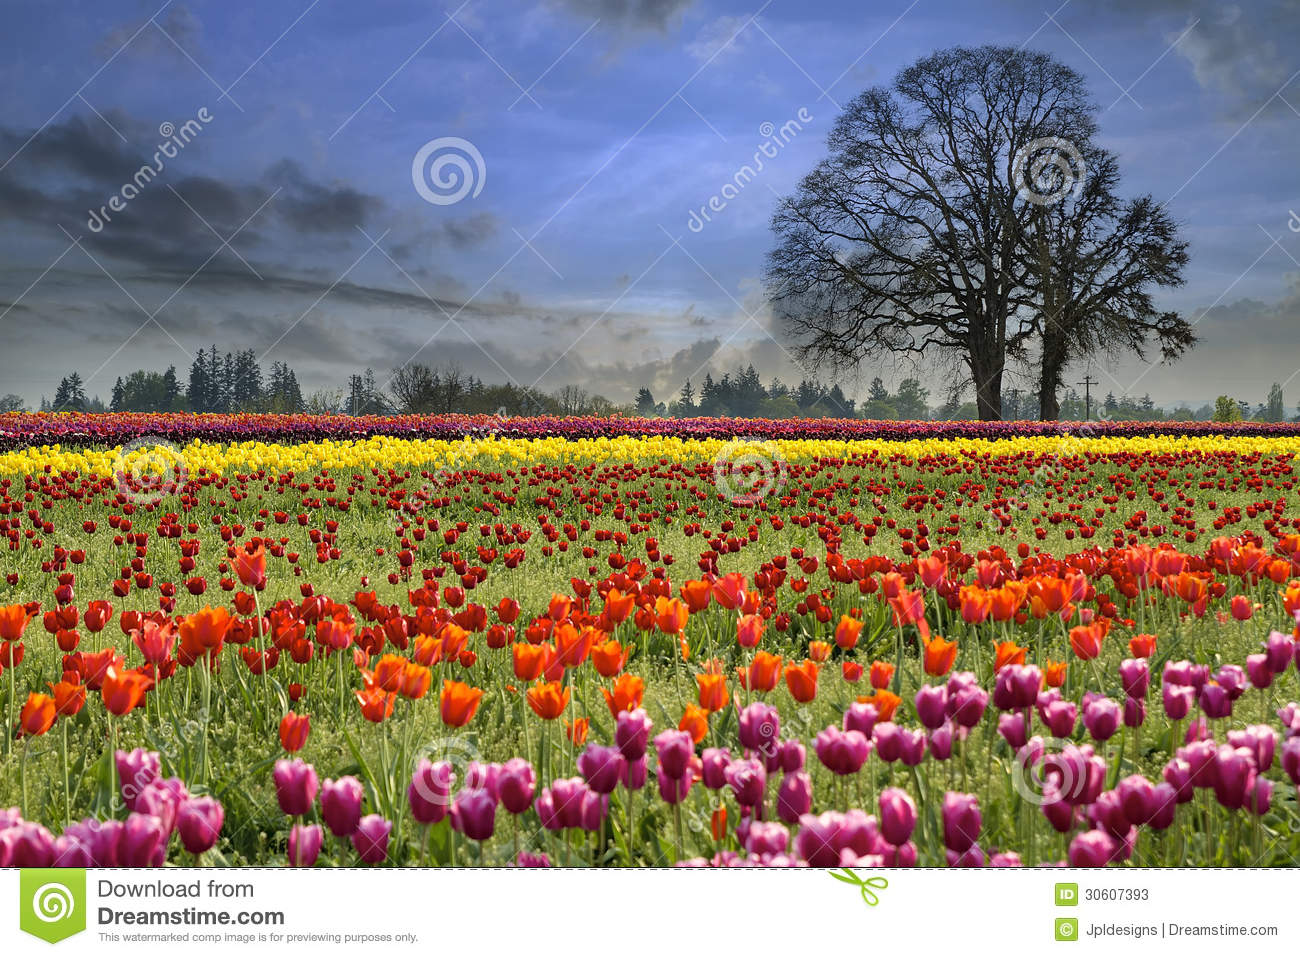 Spring Flowers Tulips Field Sunrise Grass Clouds: Tulips Blooming In Spring Season Stock Image